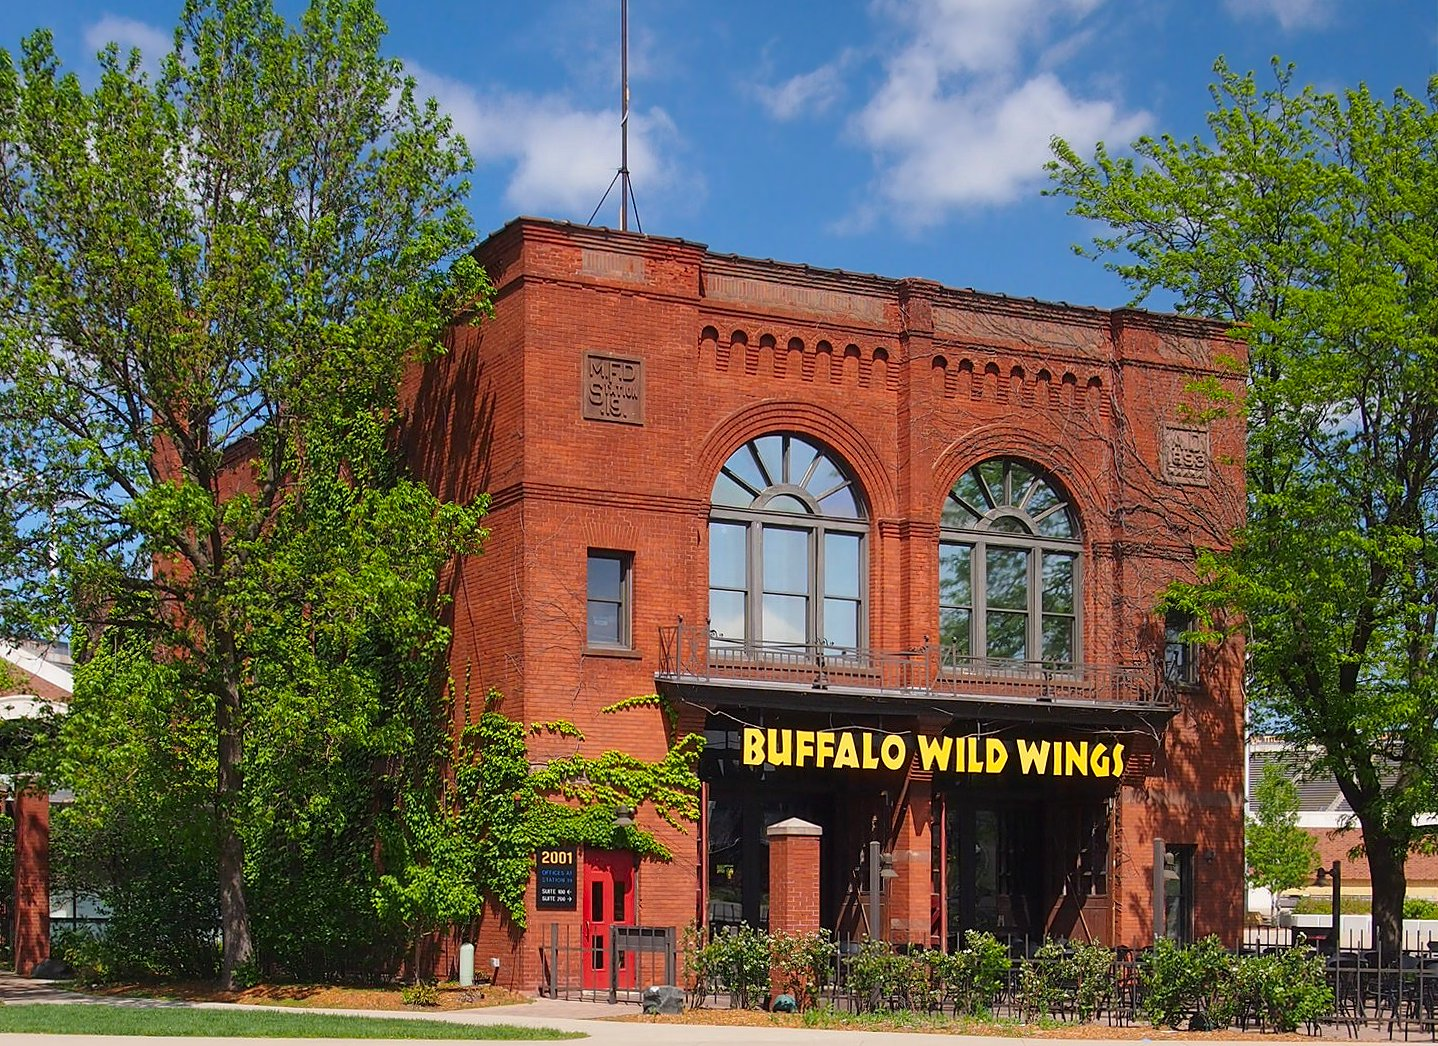 The facade of the old Fire Station No. 19 building, which now houses a Buffalo Wild Wings